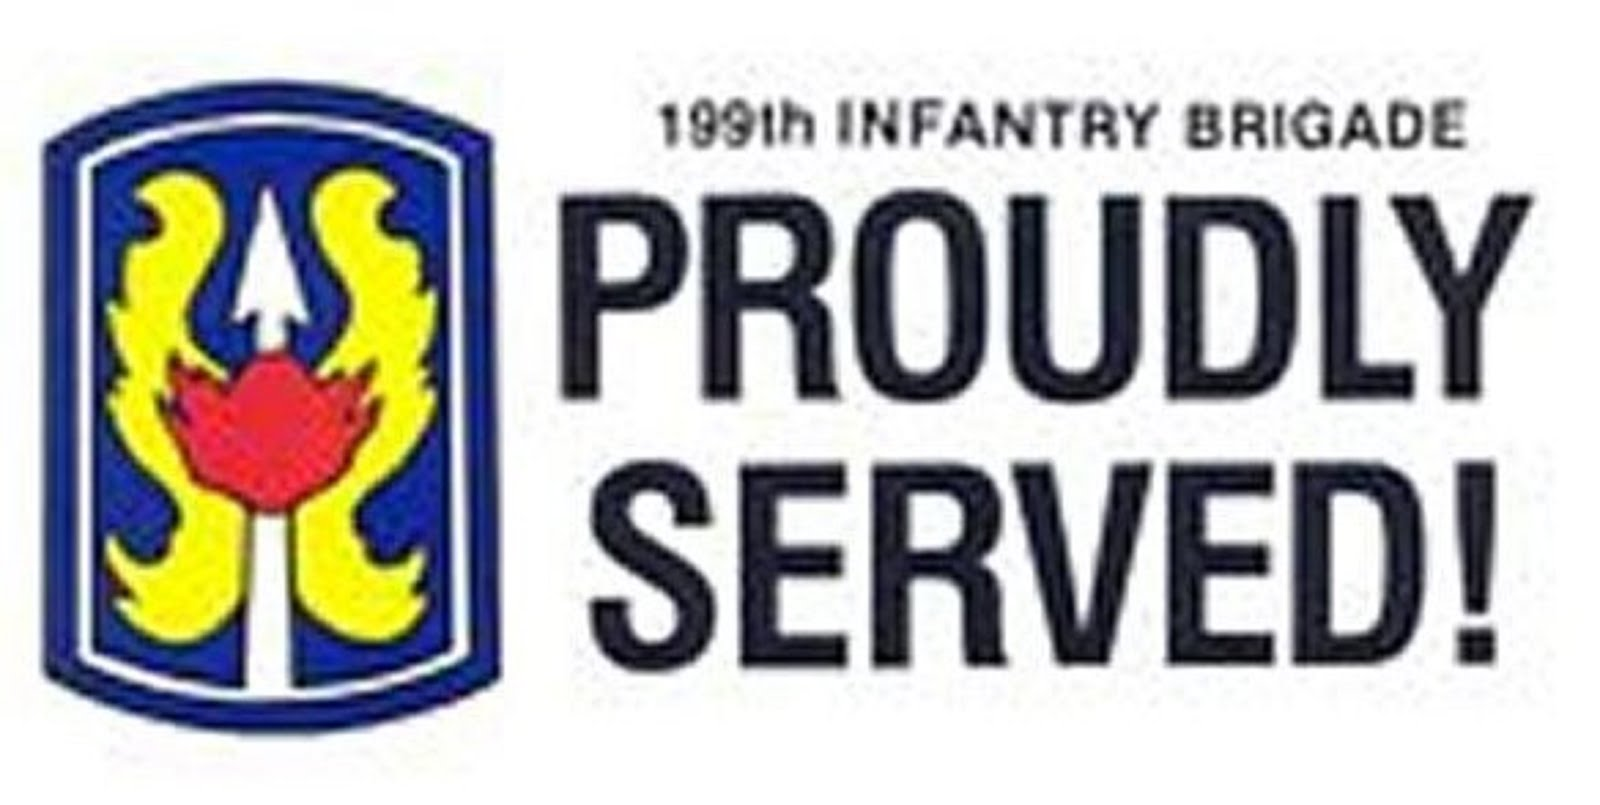 199th INFANTRY BRIGADE PROUDLY SERVED